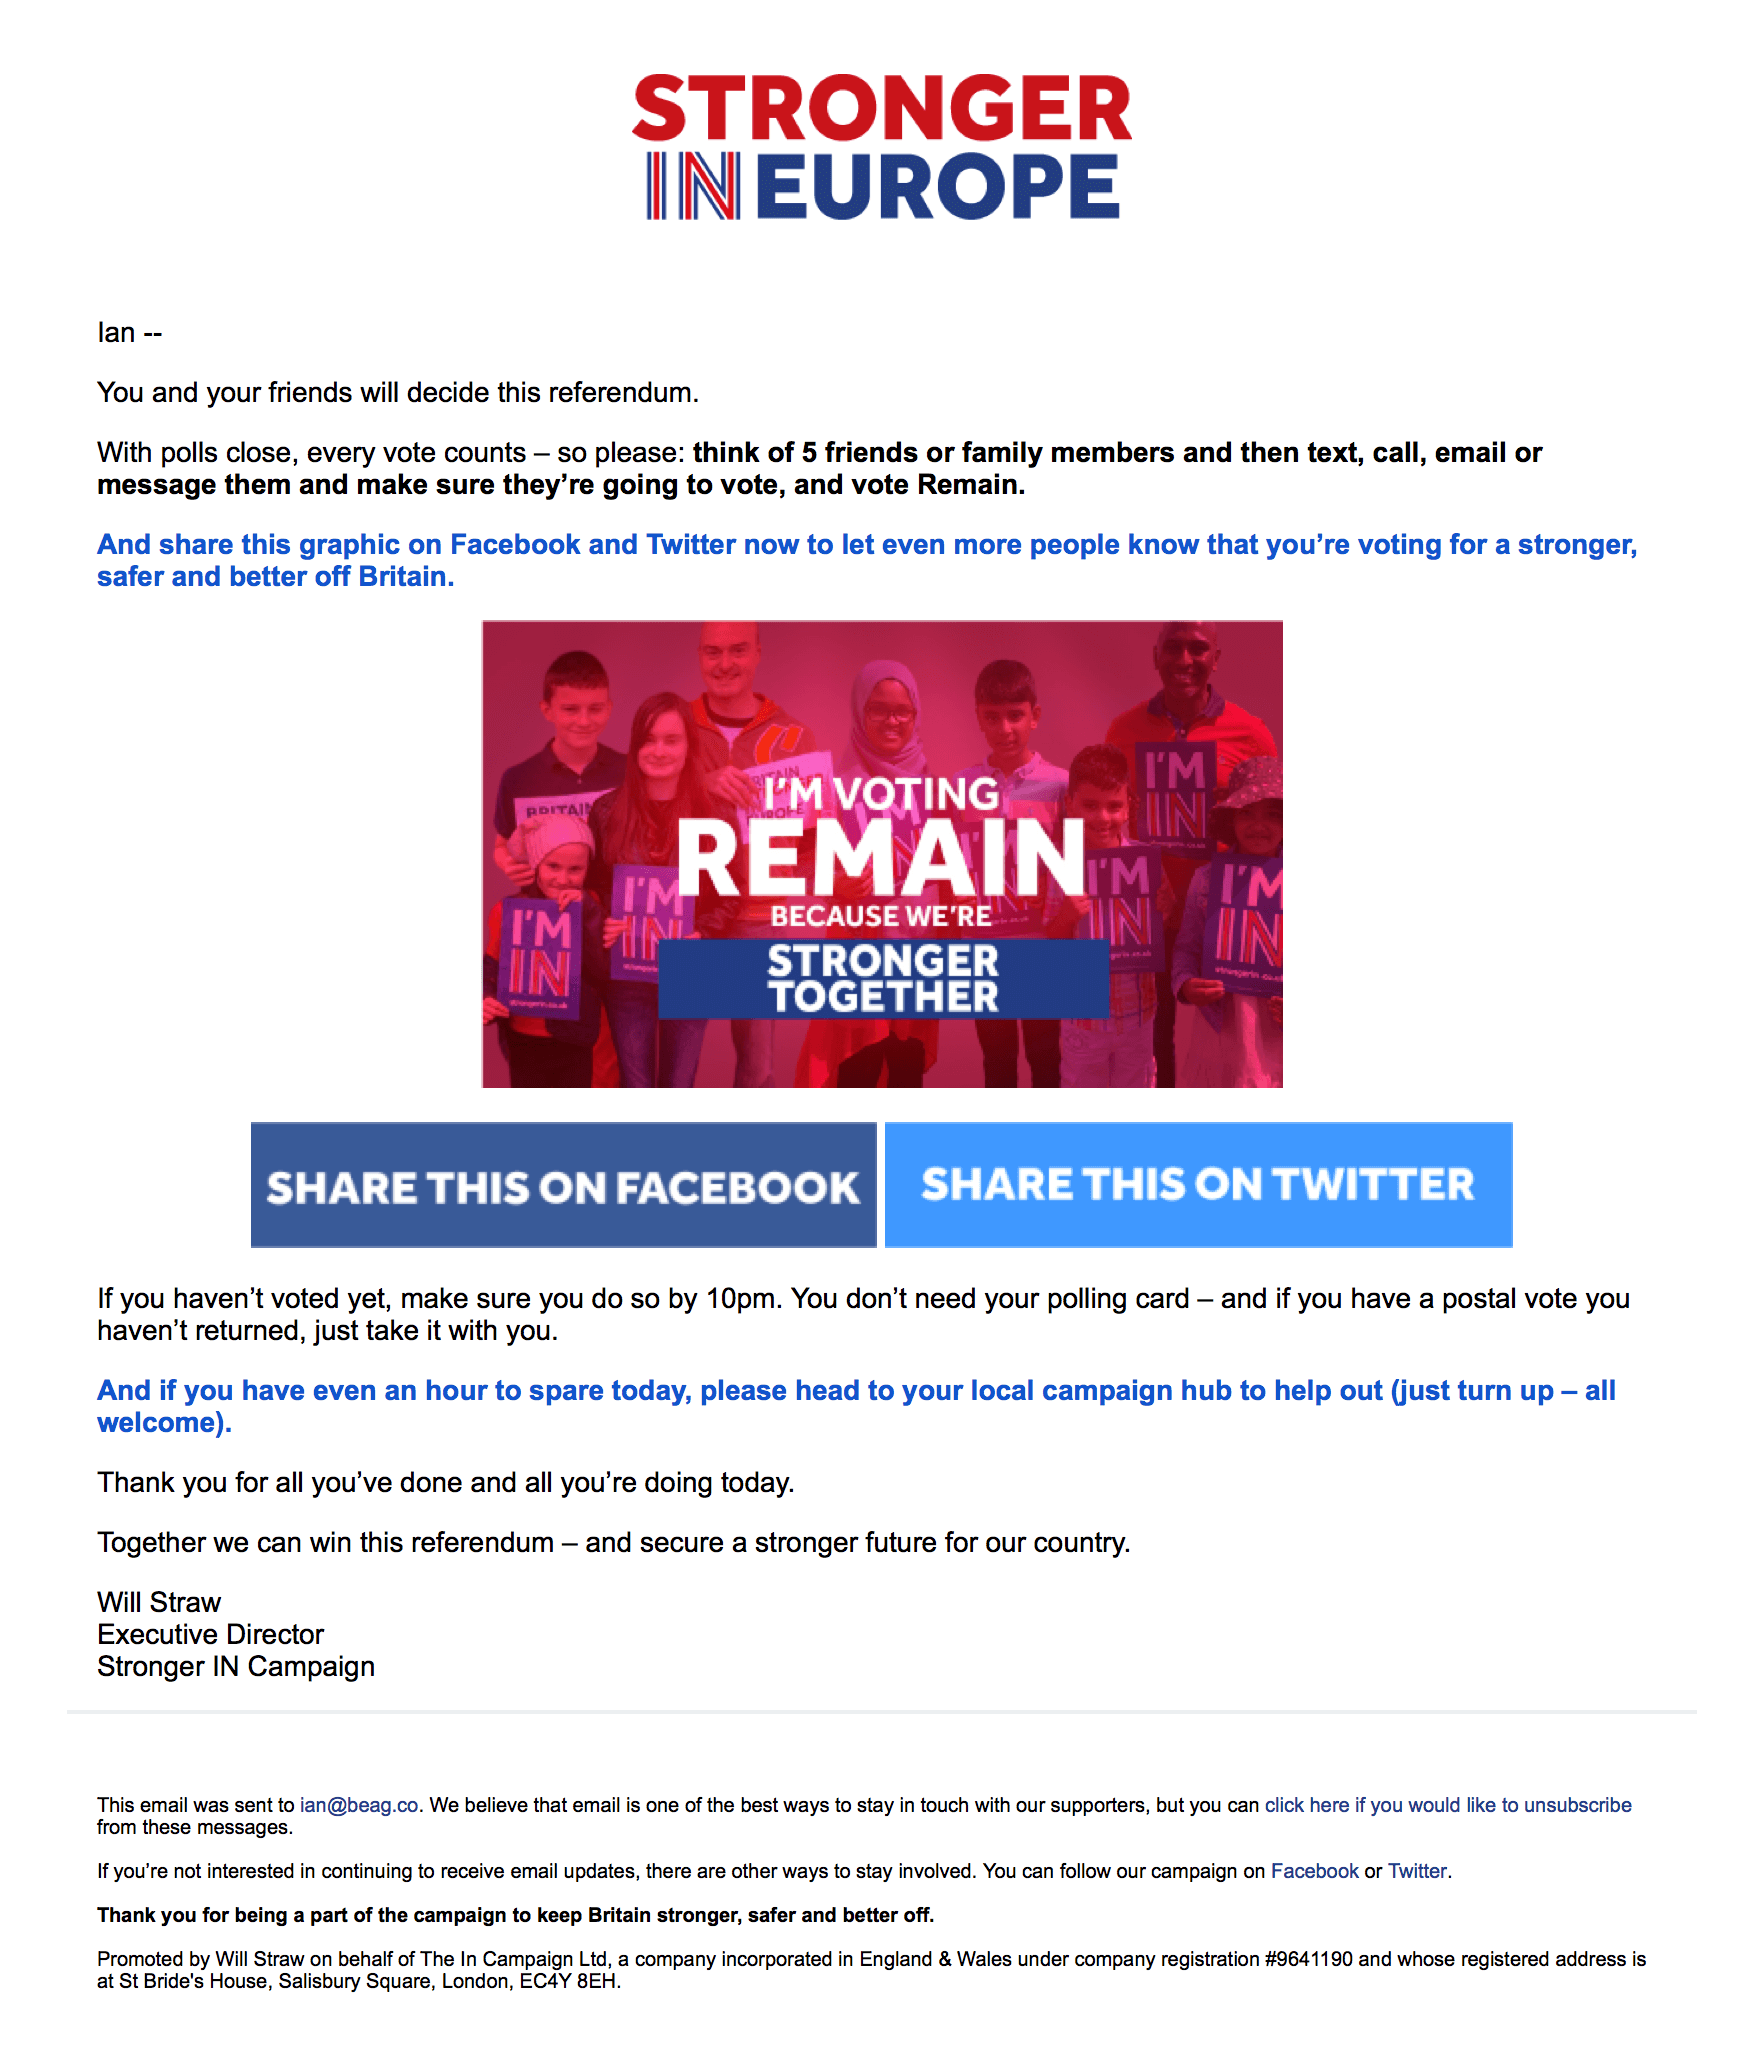 An example of a supporter engagement email, sent on Polling Day. (June 23, 2016)